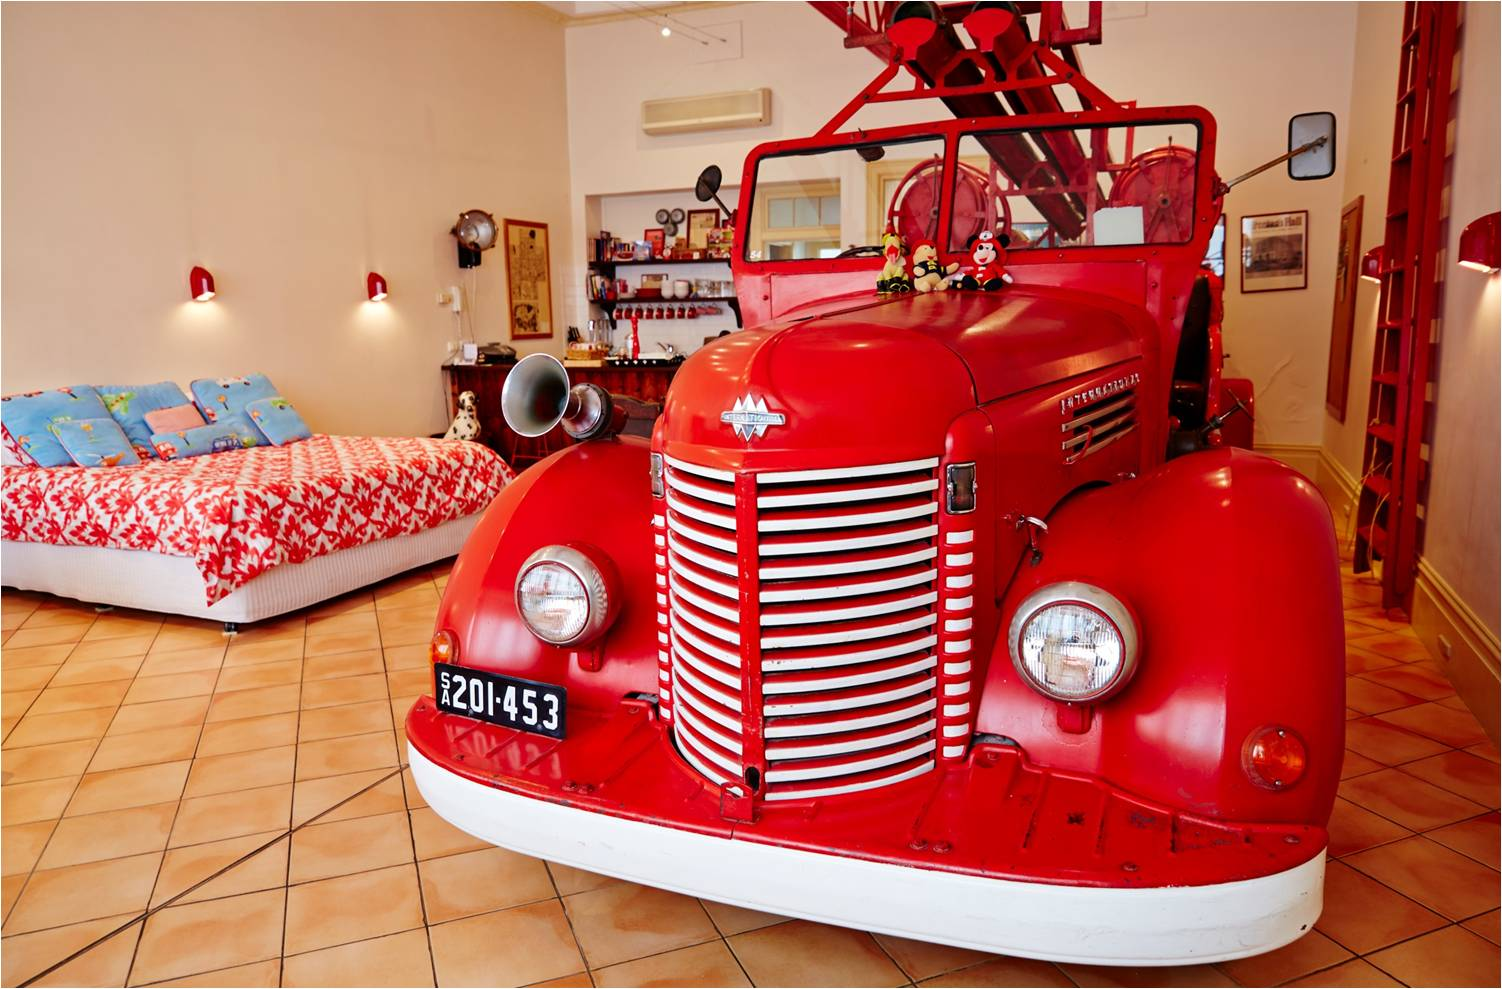 Fire Station Inn │ Adelaide Hotels